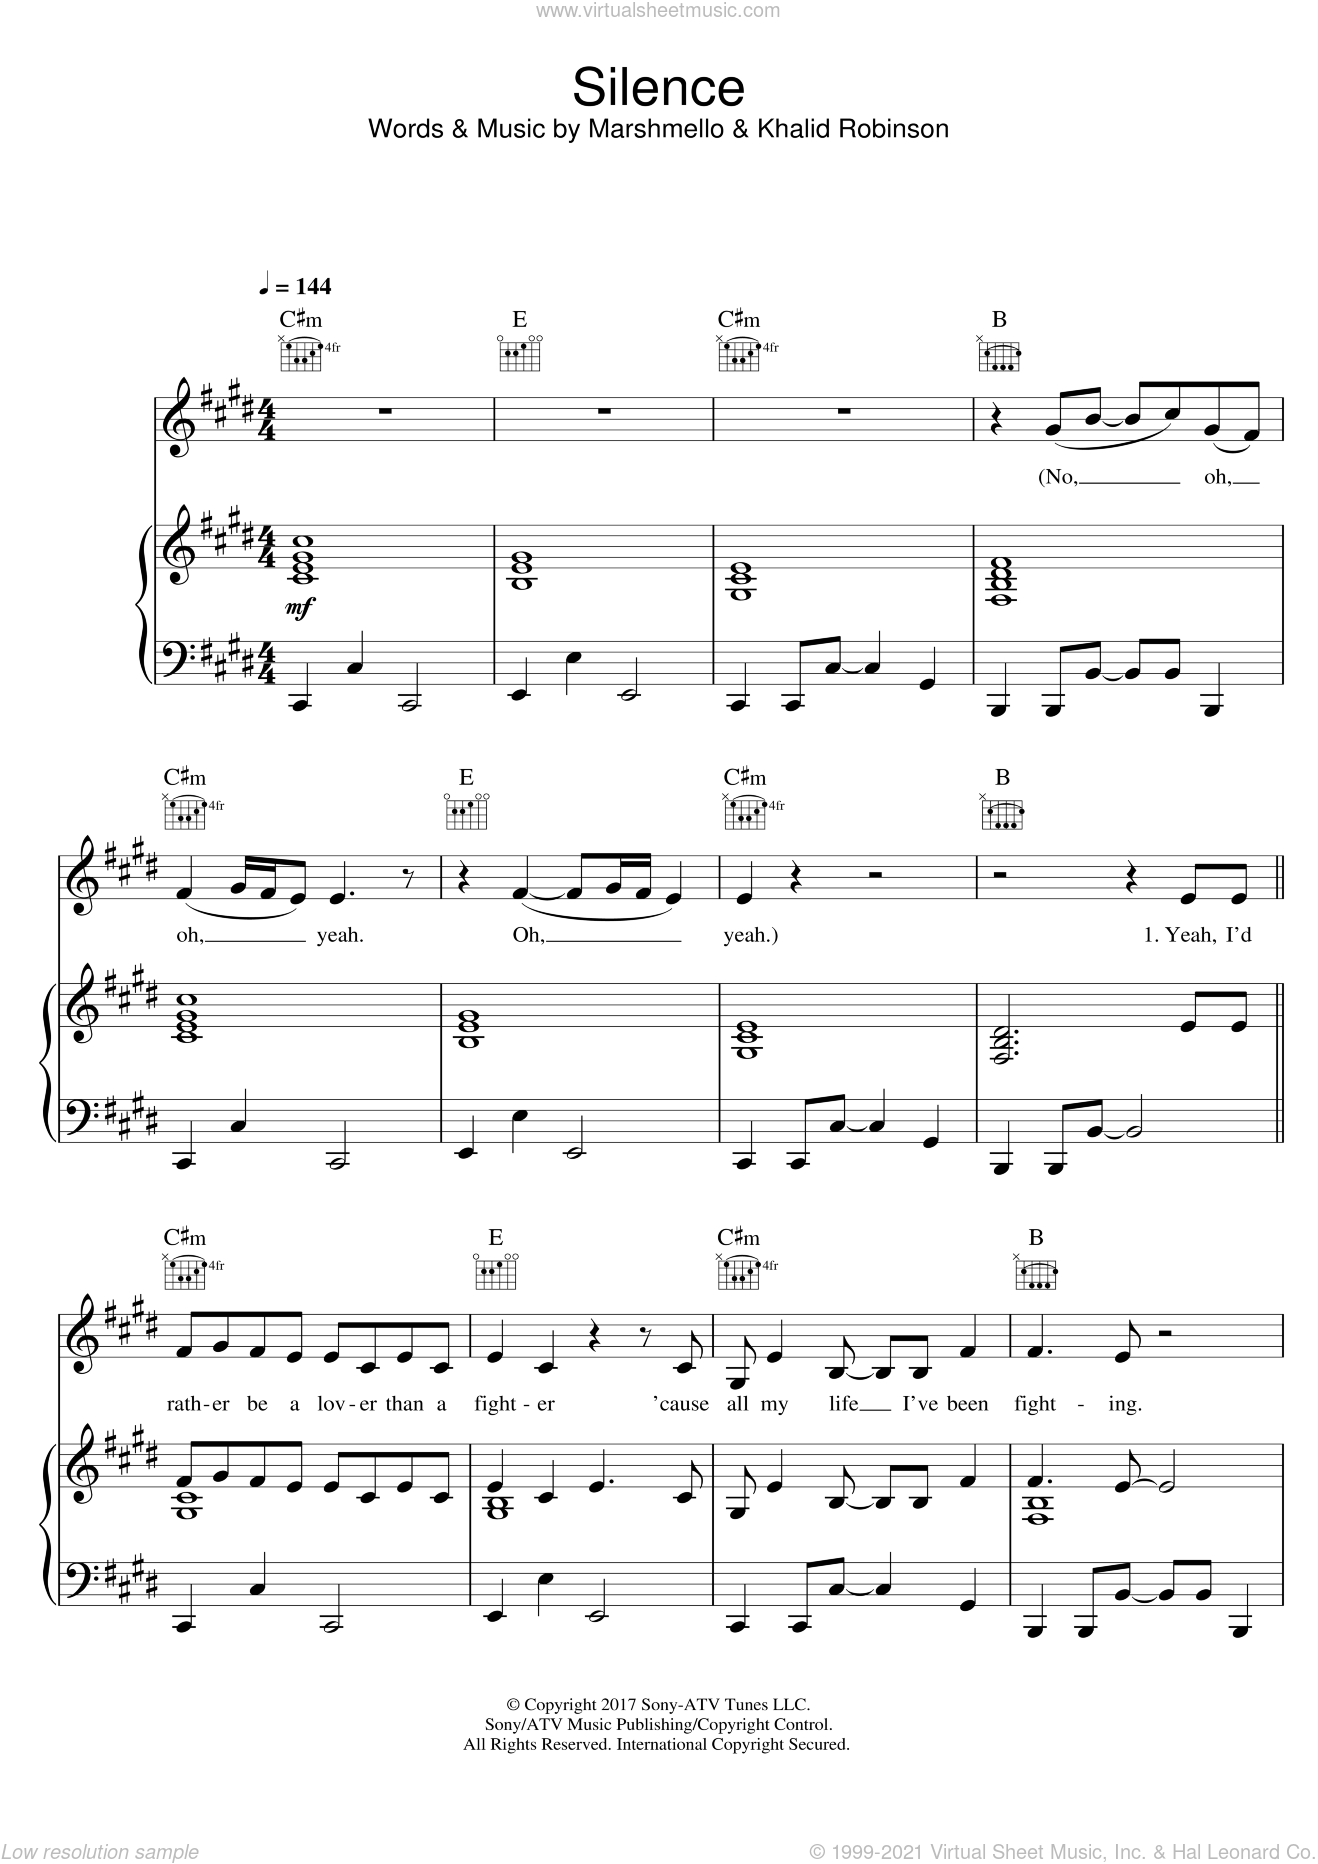 Silence (featuring Khalid) sheet music for voice, piano or guitar by Marshmello, Khalid and Khalid Robinson, intermediate skill level